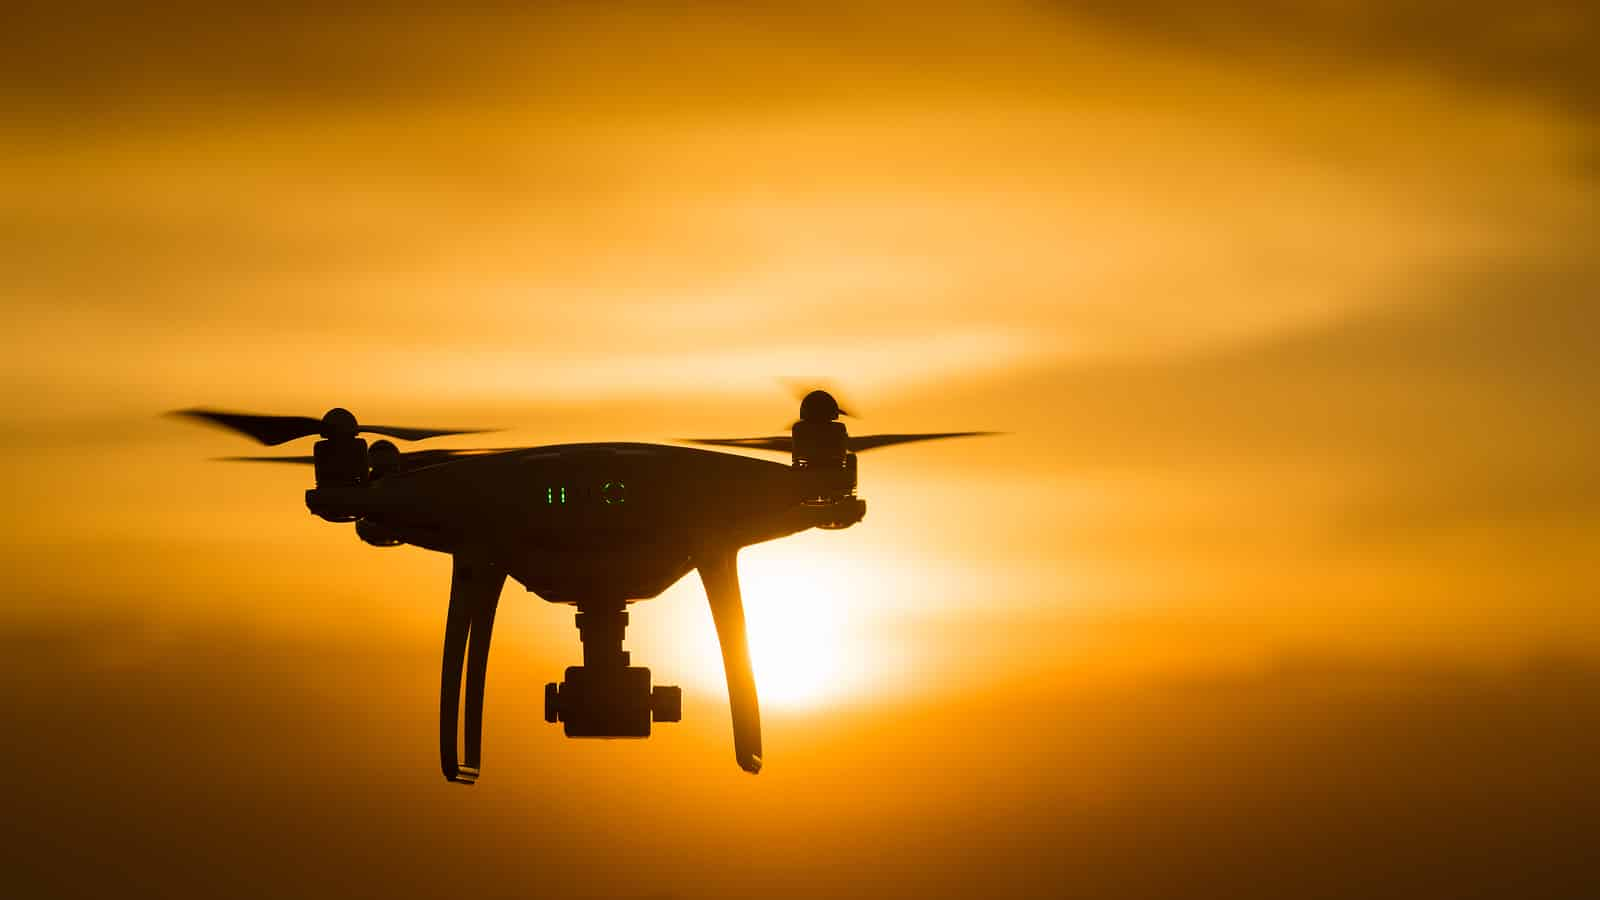 U.S. Military Deploying Advanced Drone System Developed with Israel Ministry of Defense